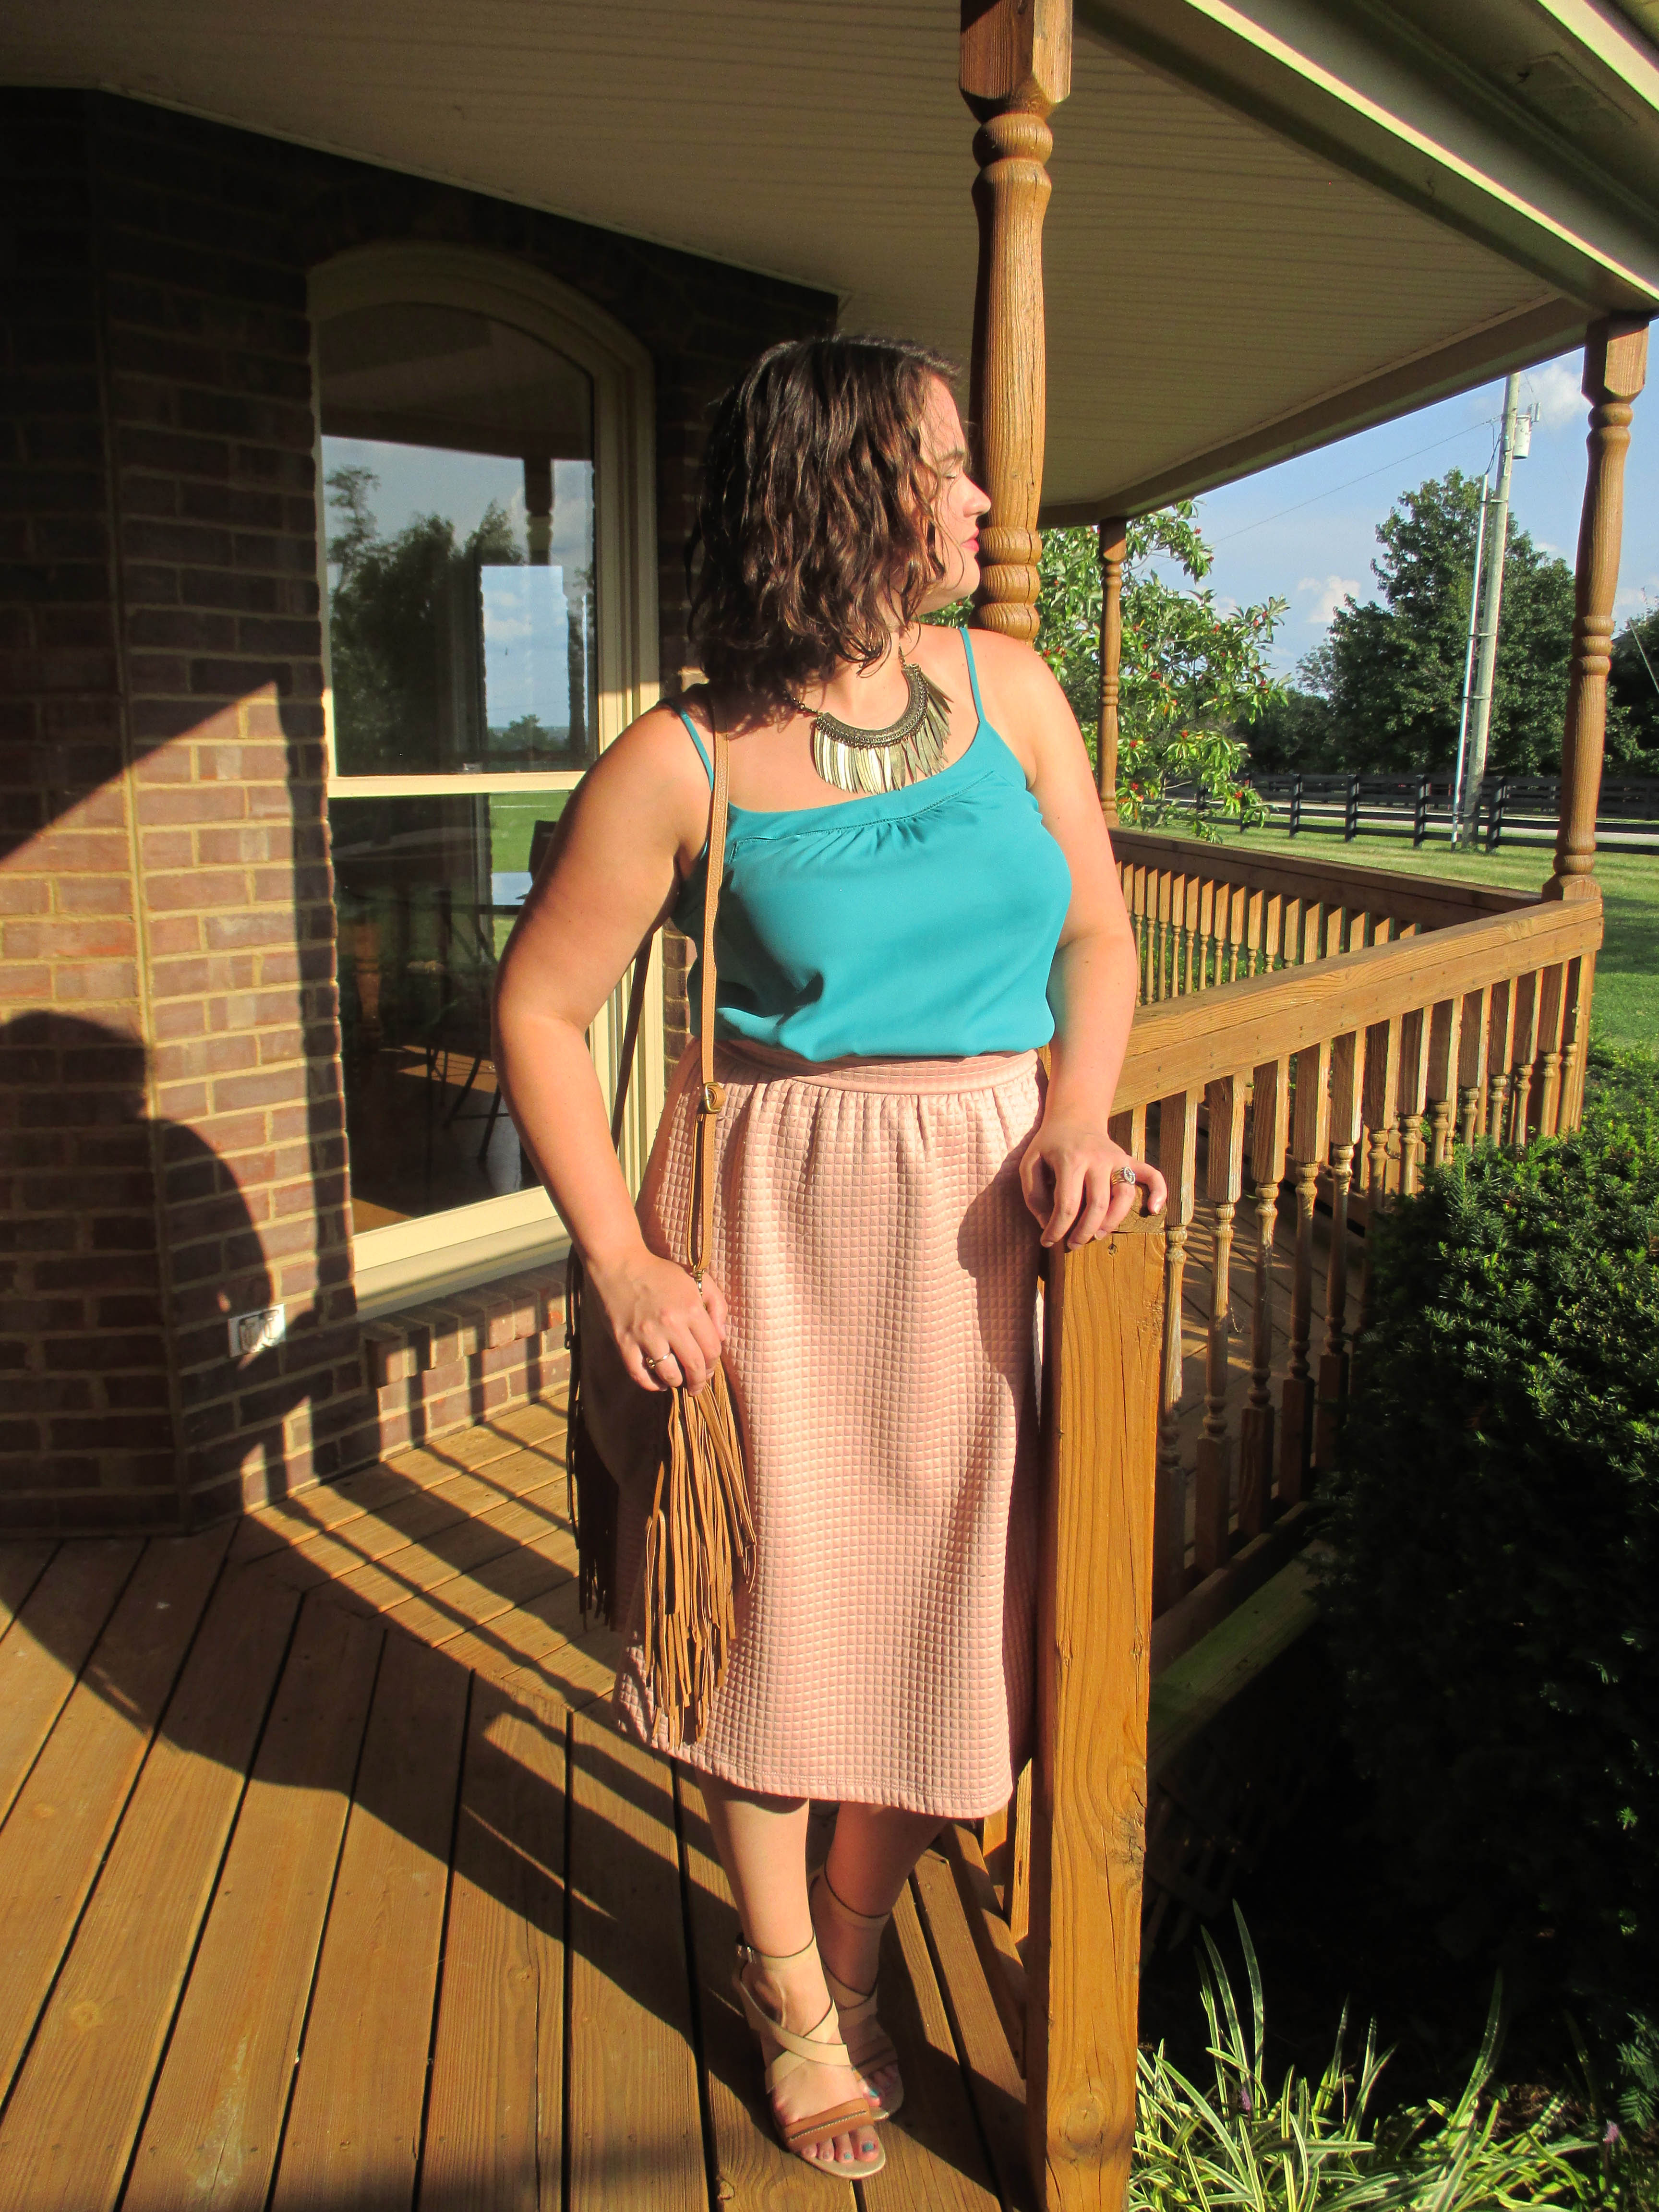 lauren allen fashion blog 8-24-15a